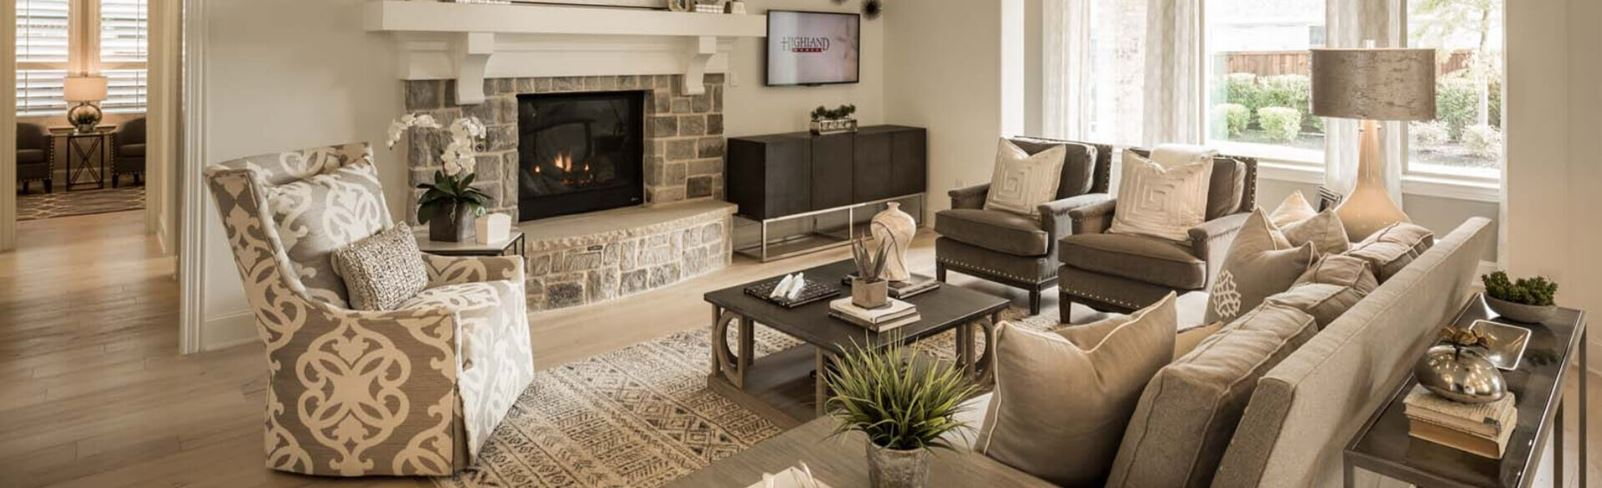 Highland Homes at Hollyhock in Frisco, TX